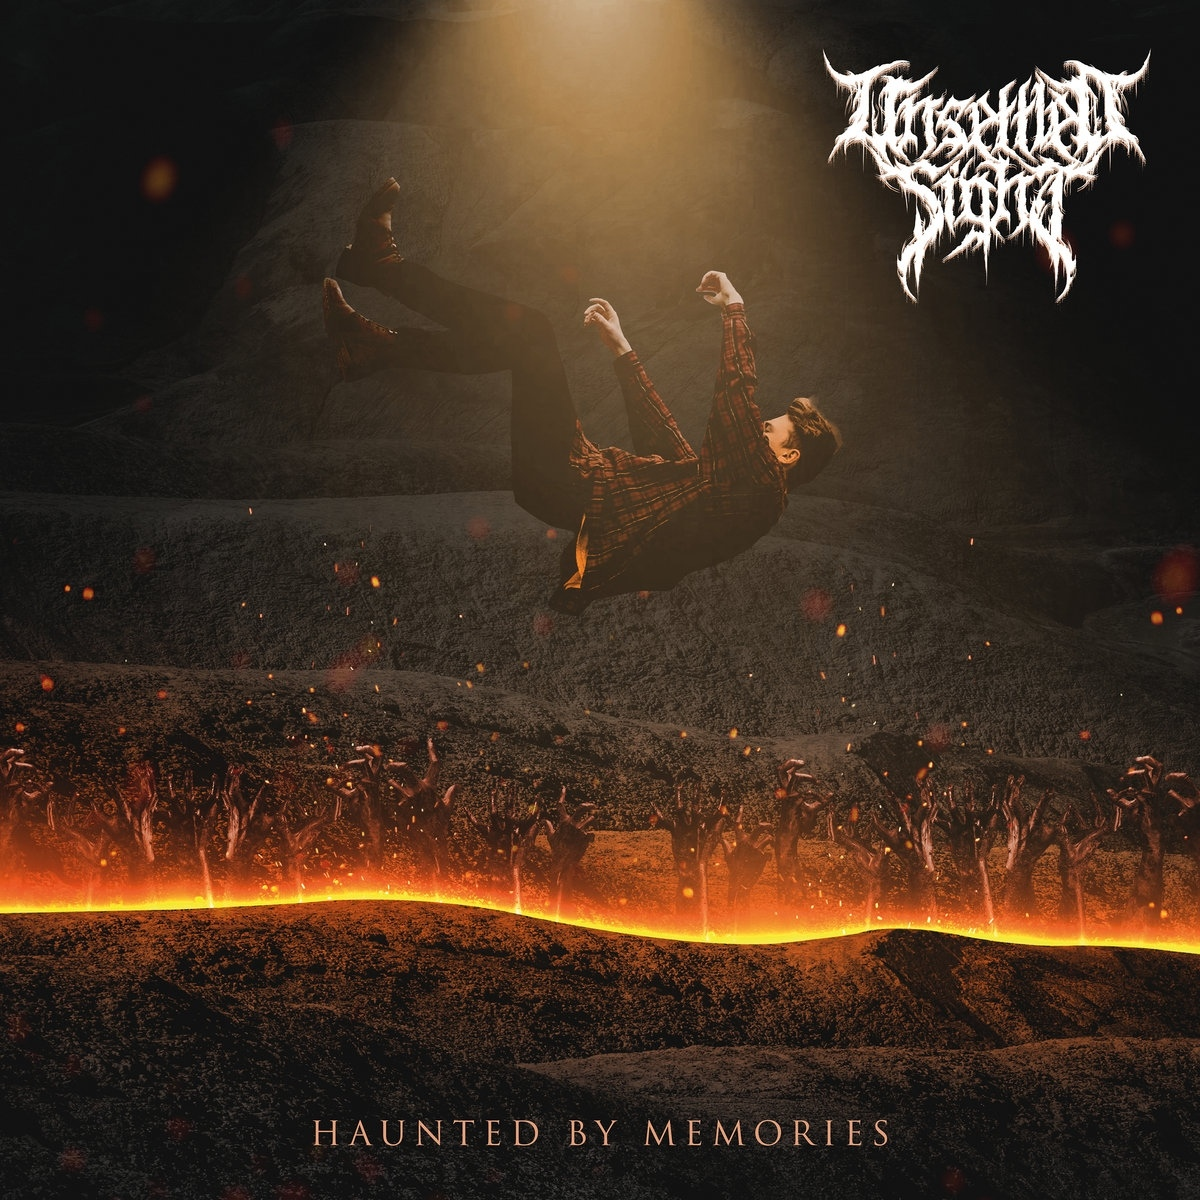 Unsettled Sight - Haunted By Memories [EP] (2018)